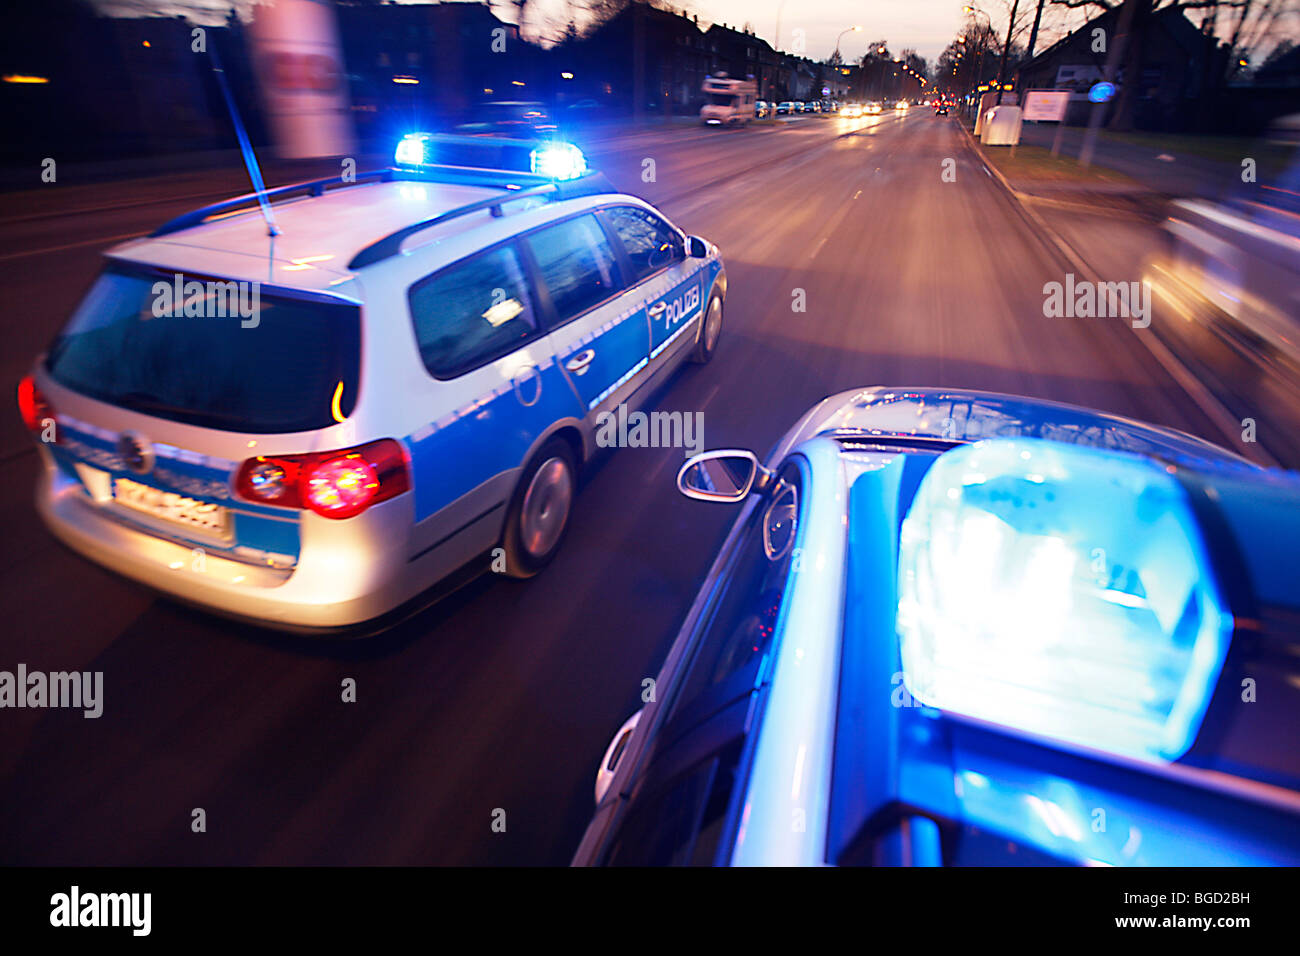 patrol car of the police in operation with blue lights switched on and siren, Germany, Europe. - Stock Image